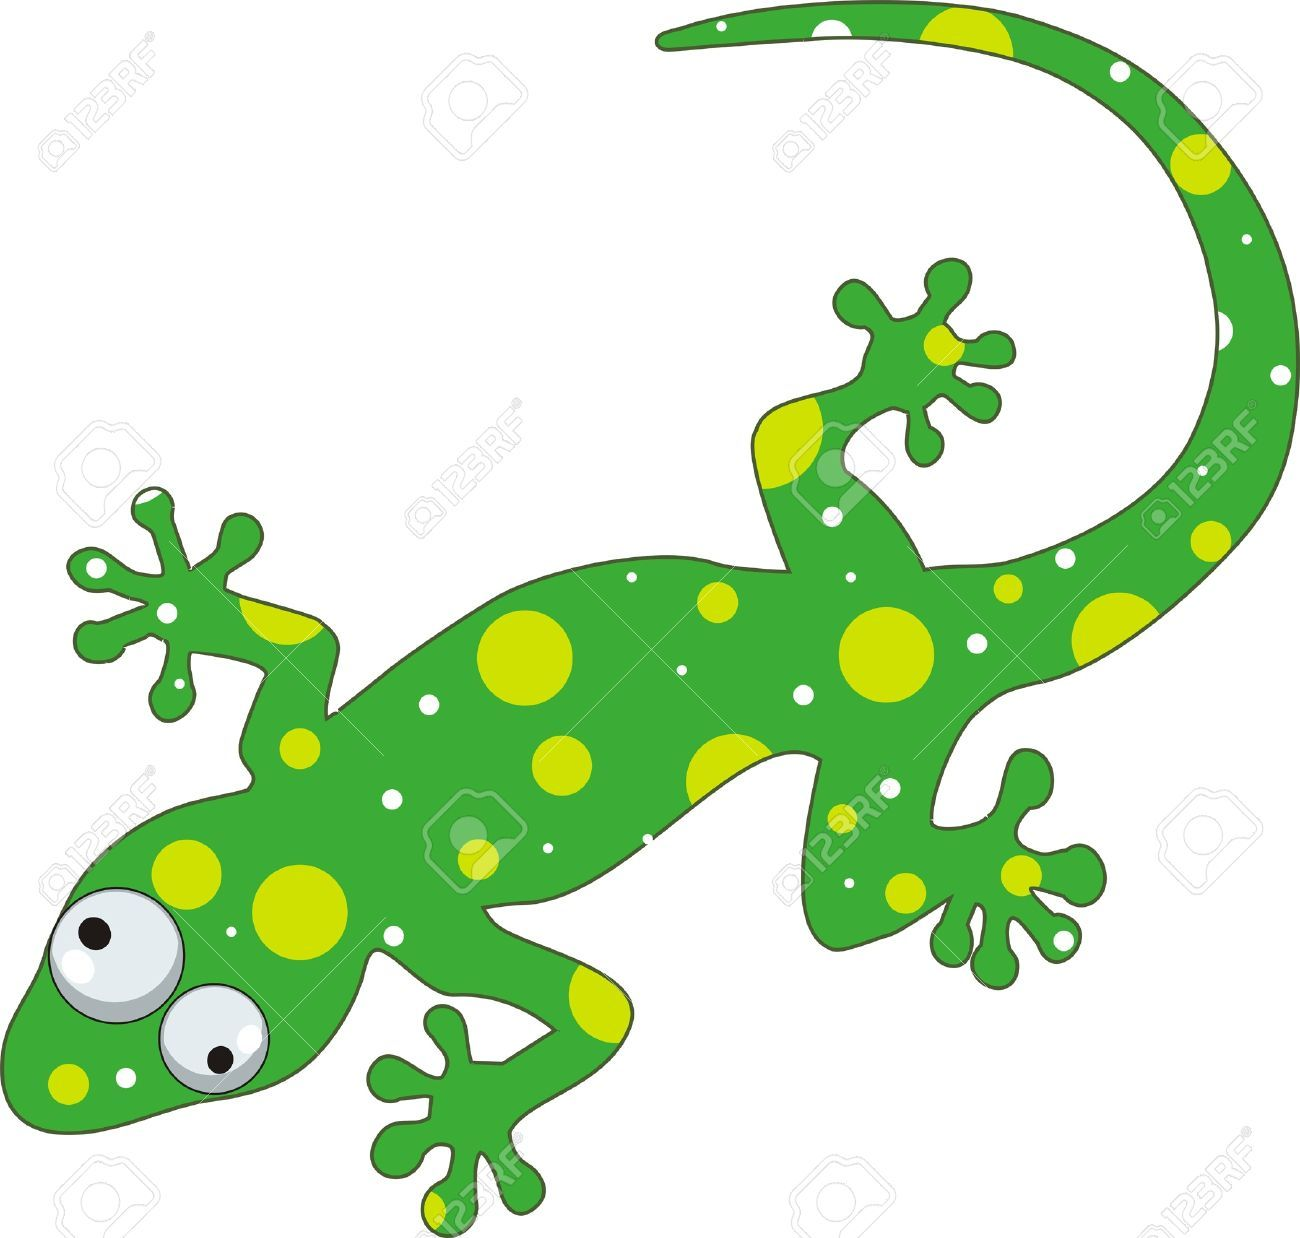 Gecko free royalty free clipart clip art download Chameleon Lizard Cliparts, Stock Vector And Royalty Free Chameleon ... clip art download